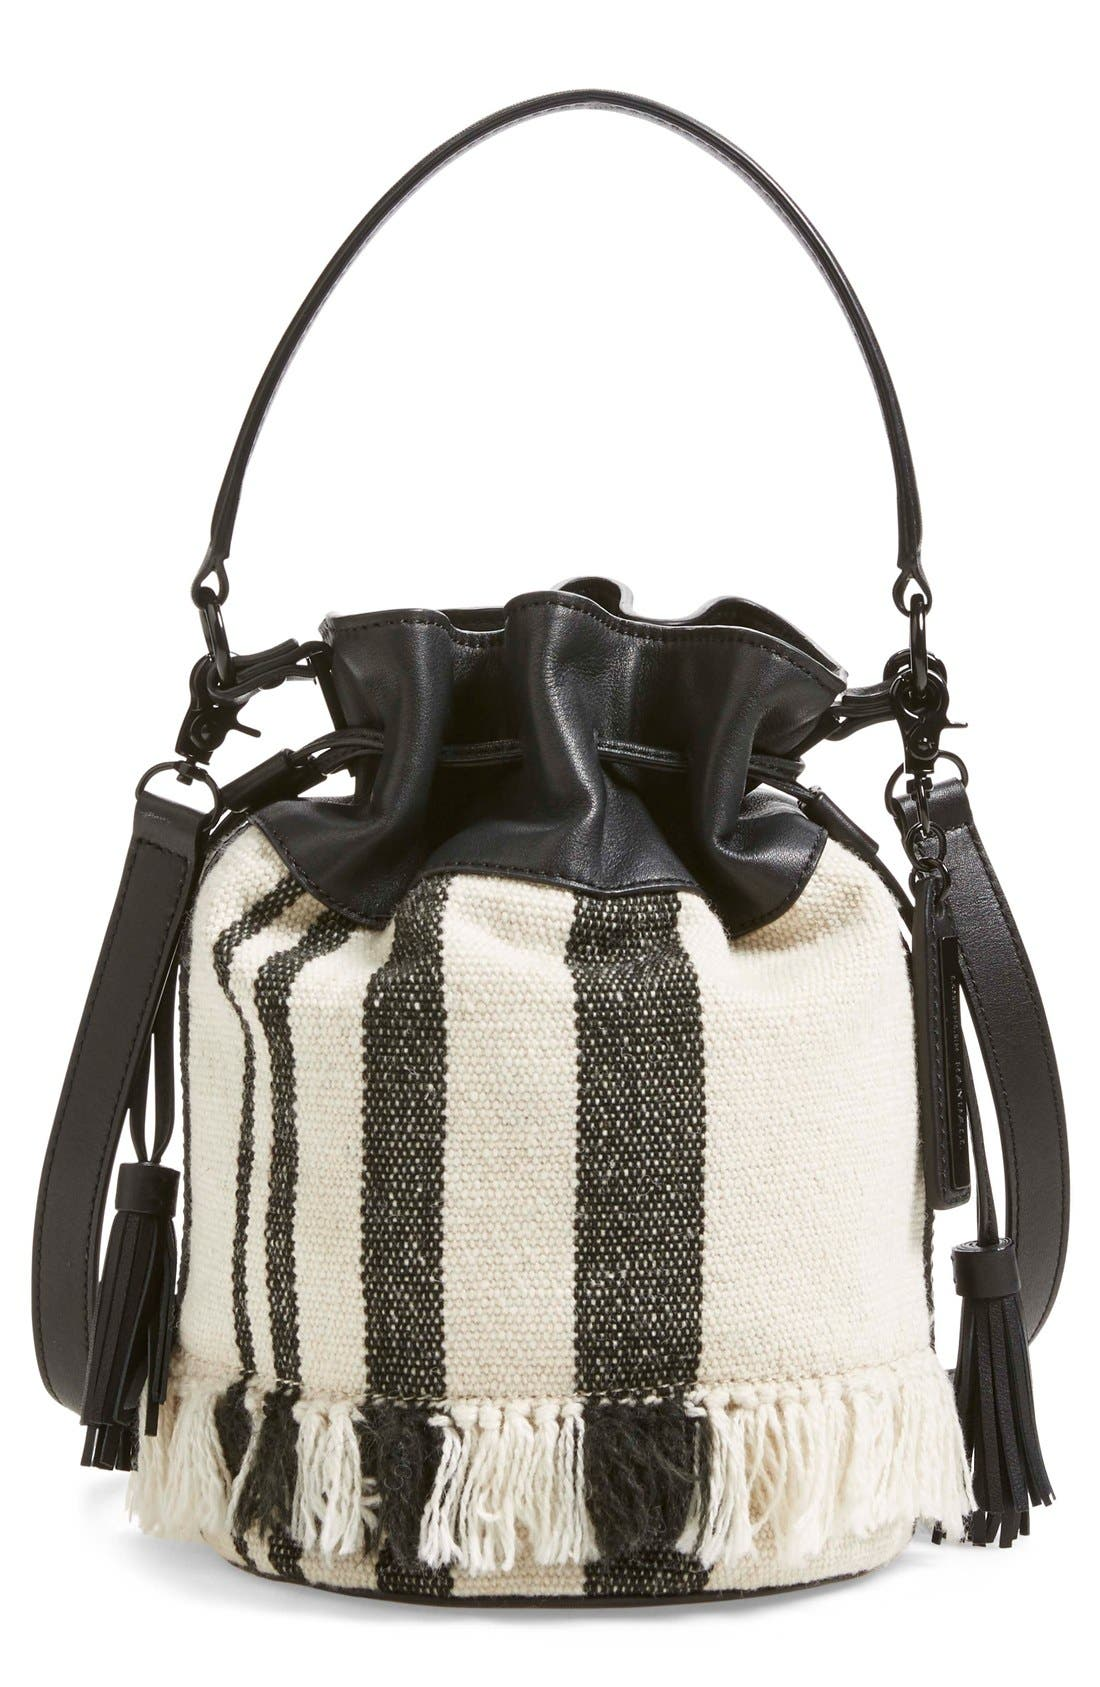 Alternate Image 1 Selected - Loeffler Randall Woven Canvas & Nappa Leather Bucket Bag